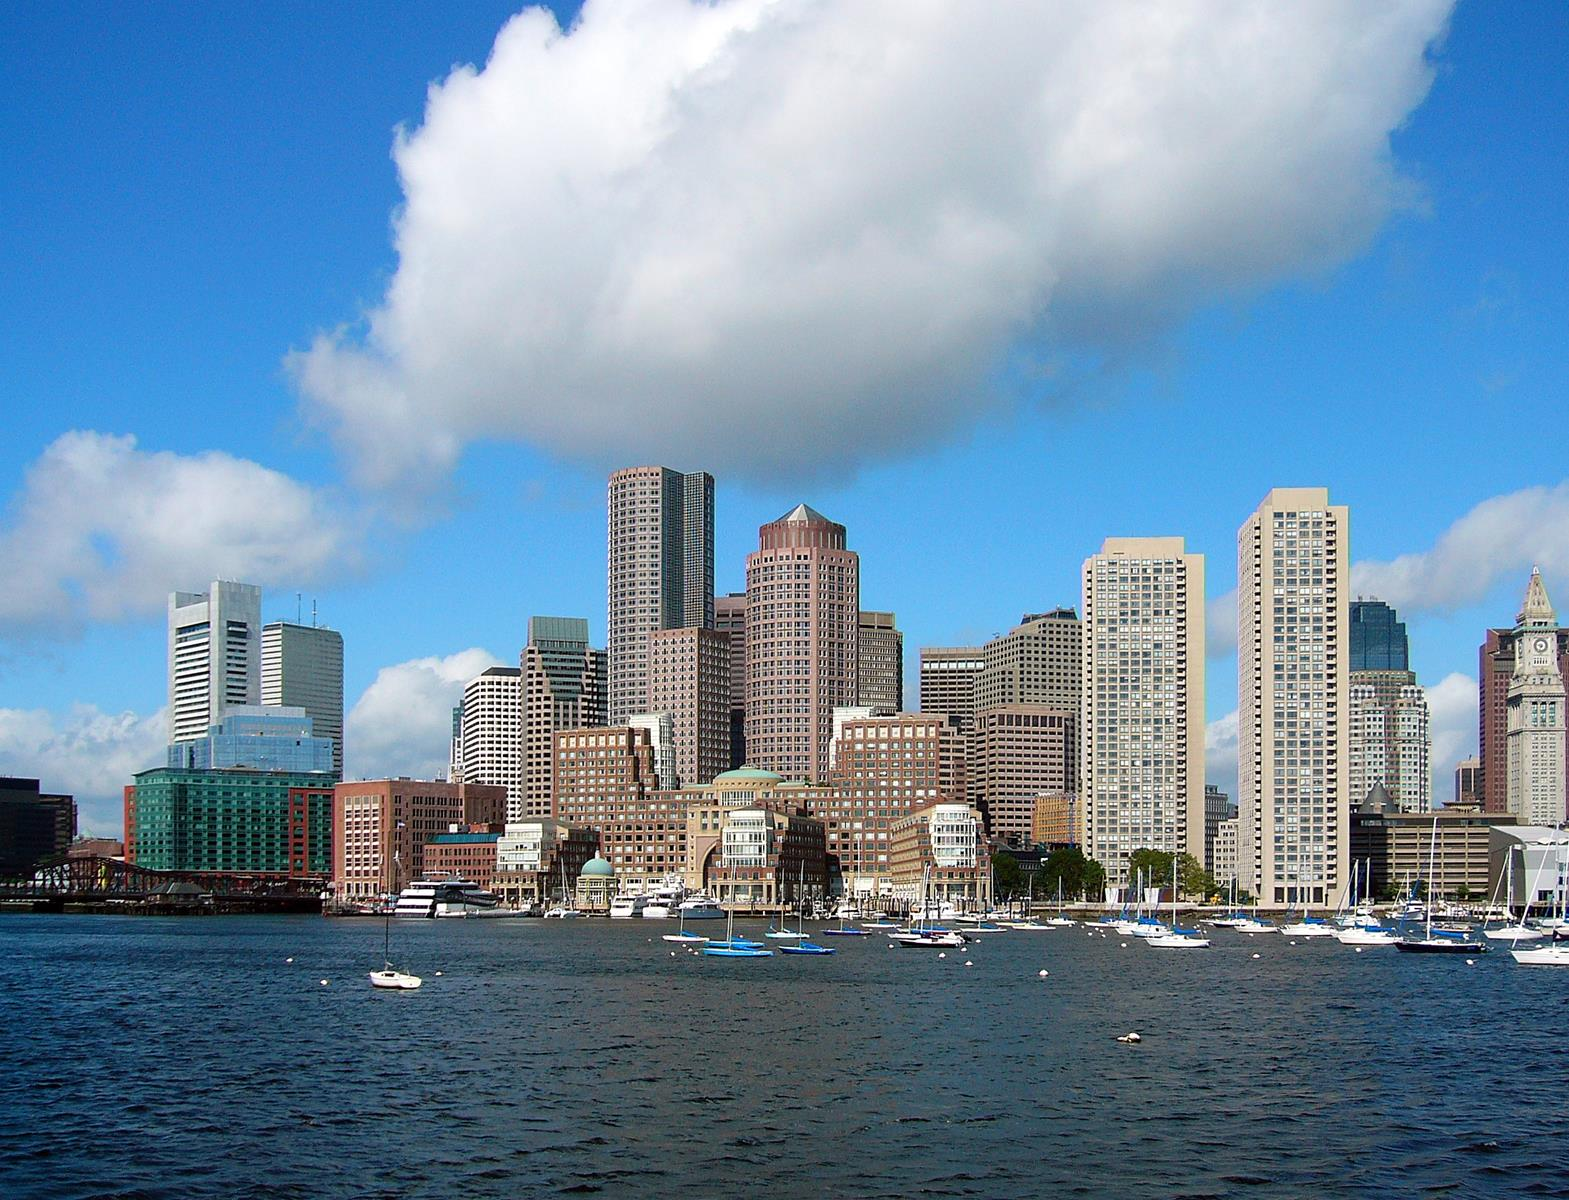 American History Comes to Life for Student Travel Groups in Boston